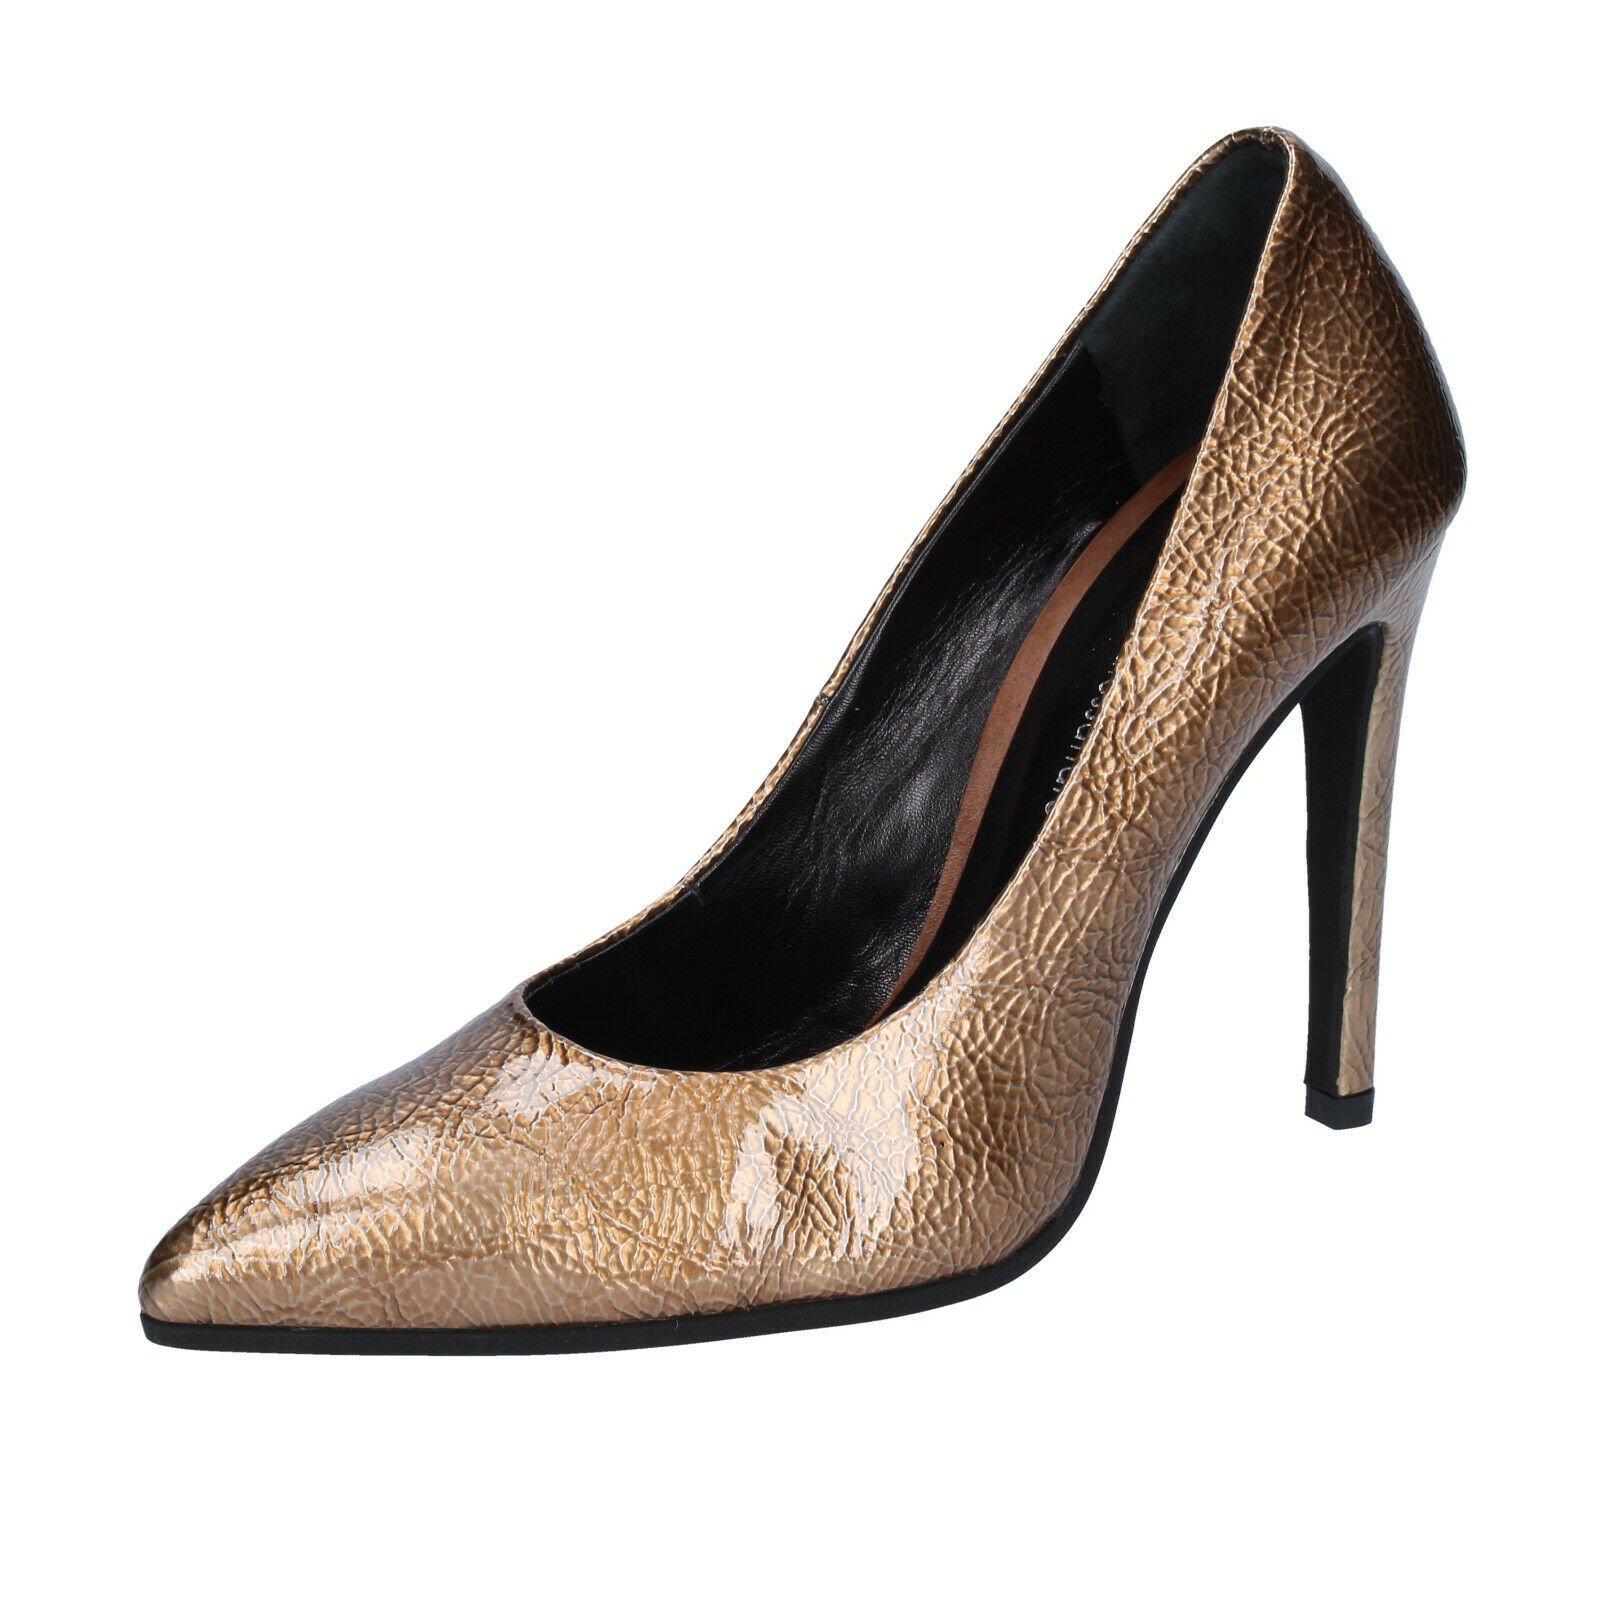 Womens shoes Armando D'Alessandro 36 EU Pumps Bronze Paint BS971-36